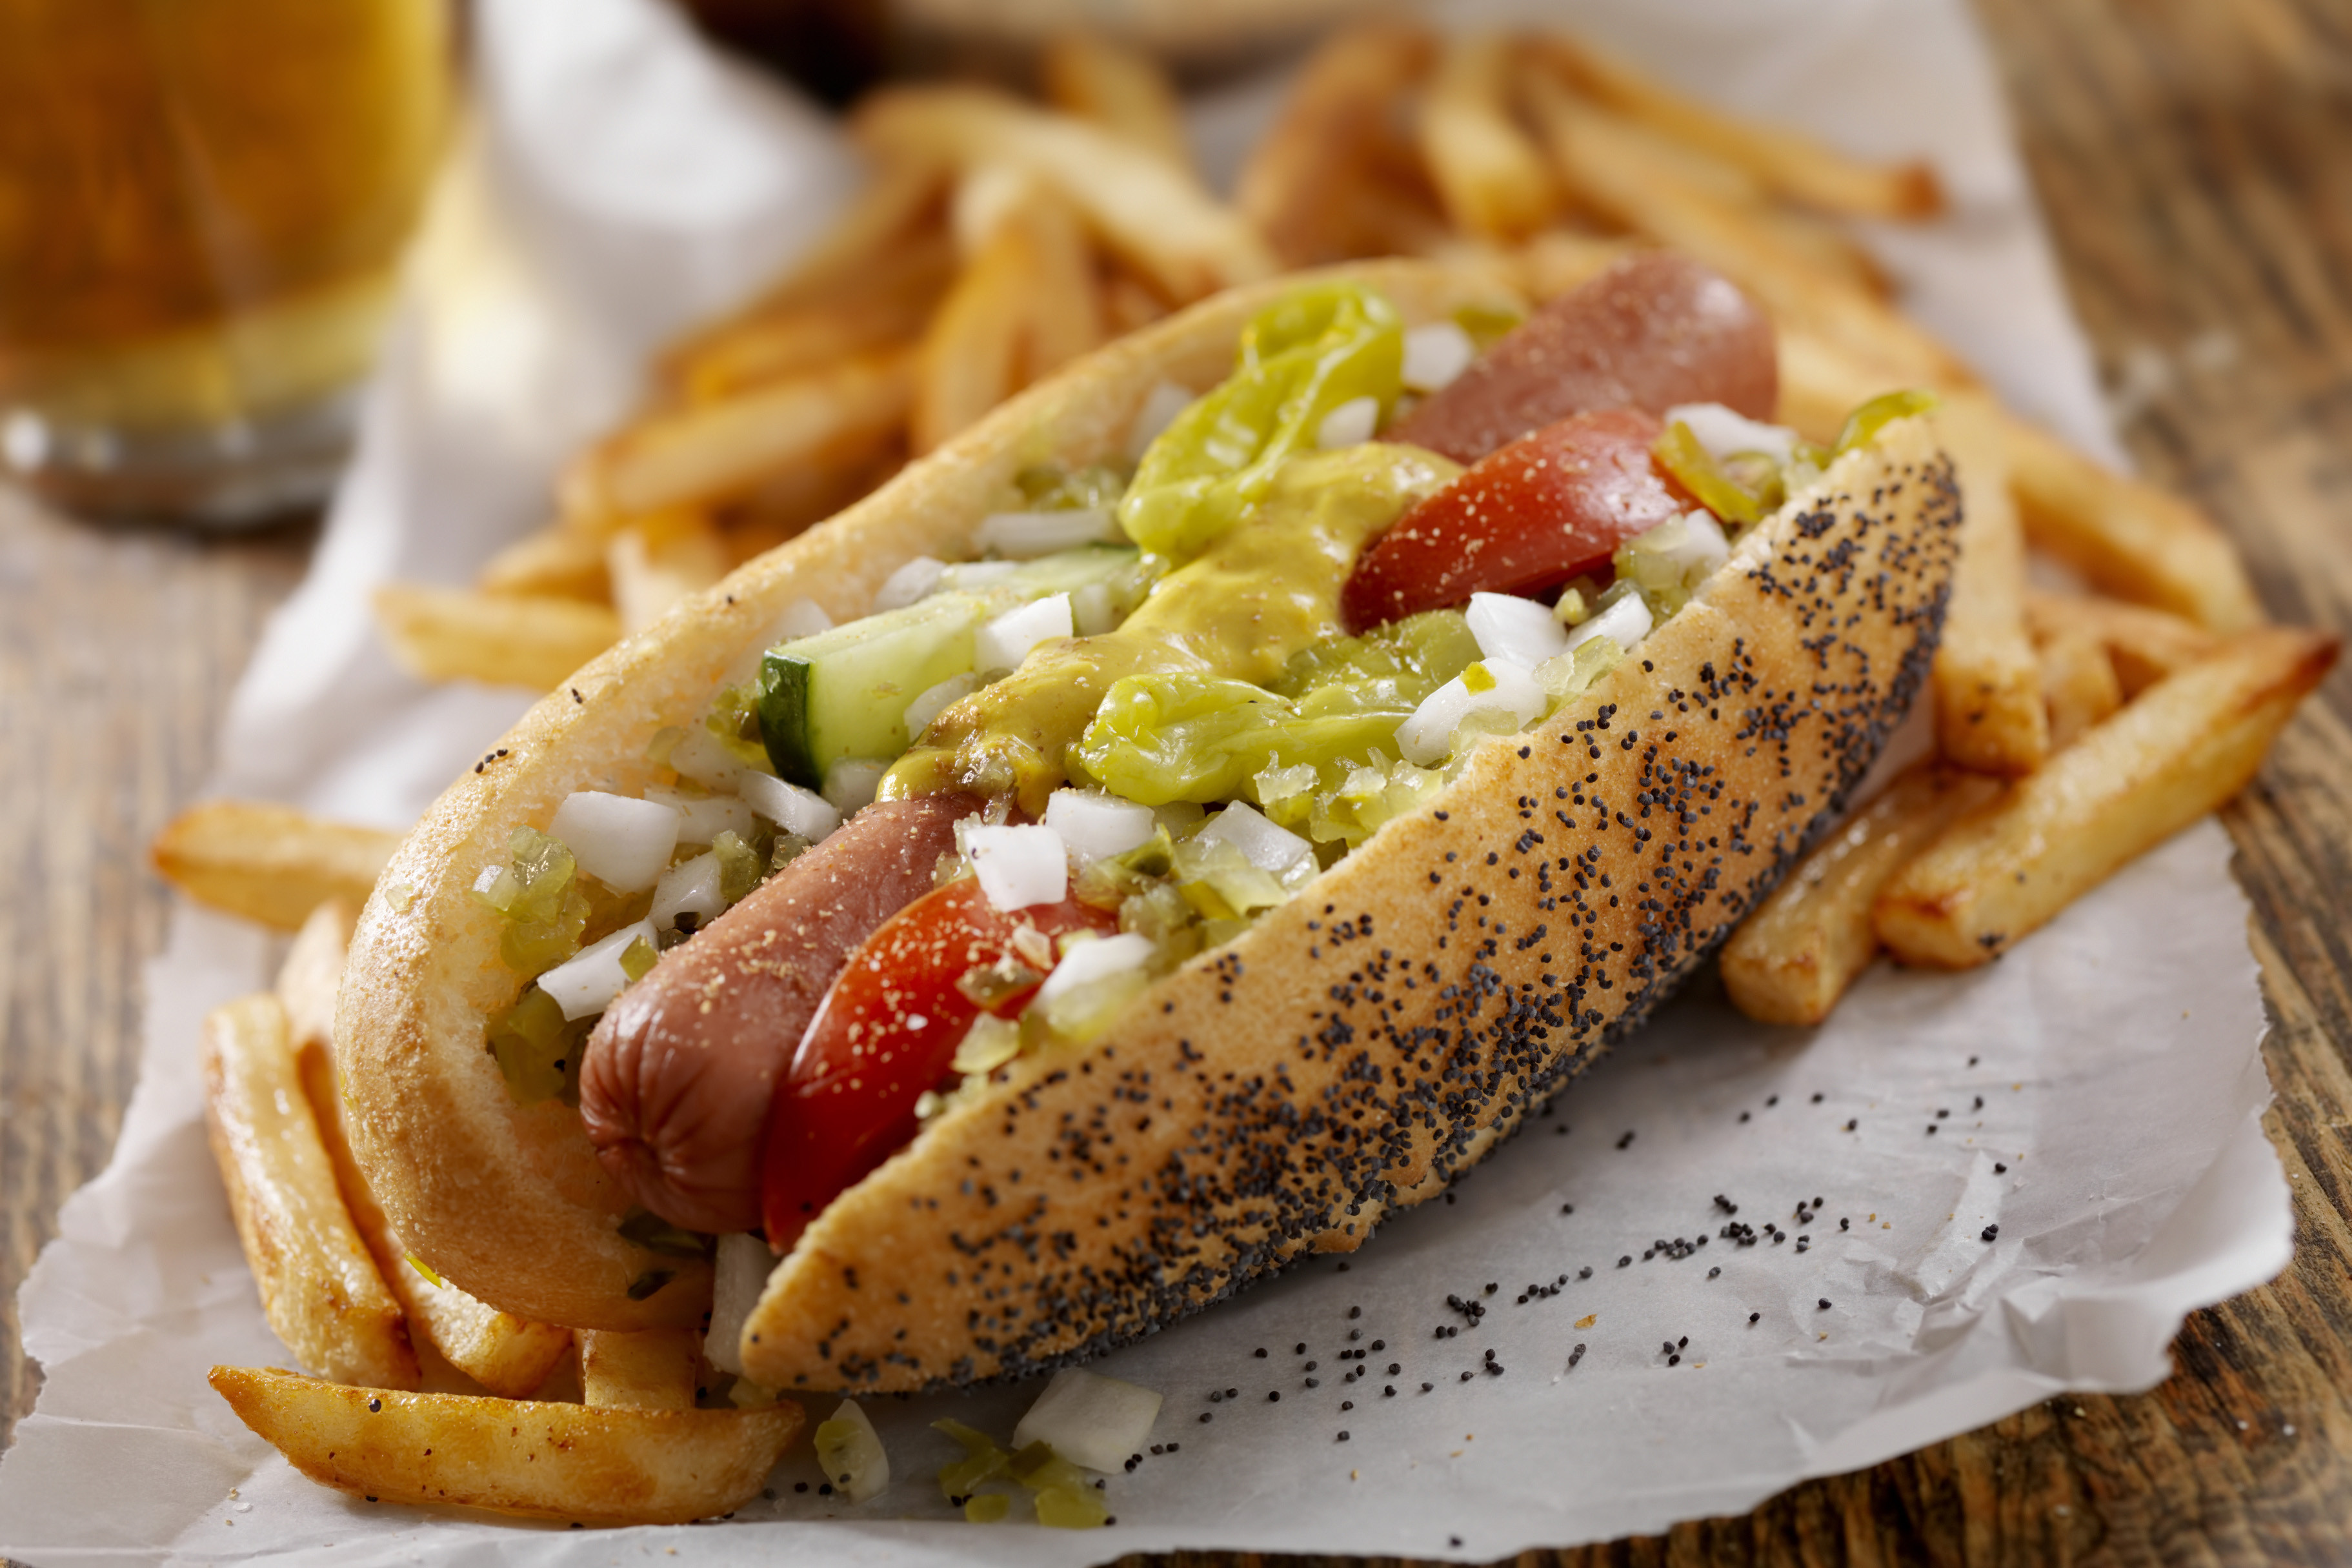 Best Healthy Hot Dogs  Bar S Foods Recalls Hot Dogs Over Listeria Wellness